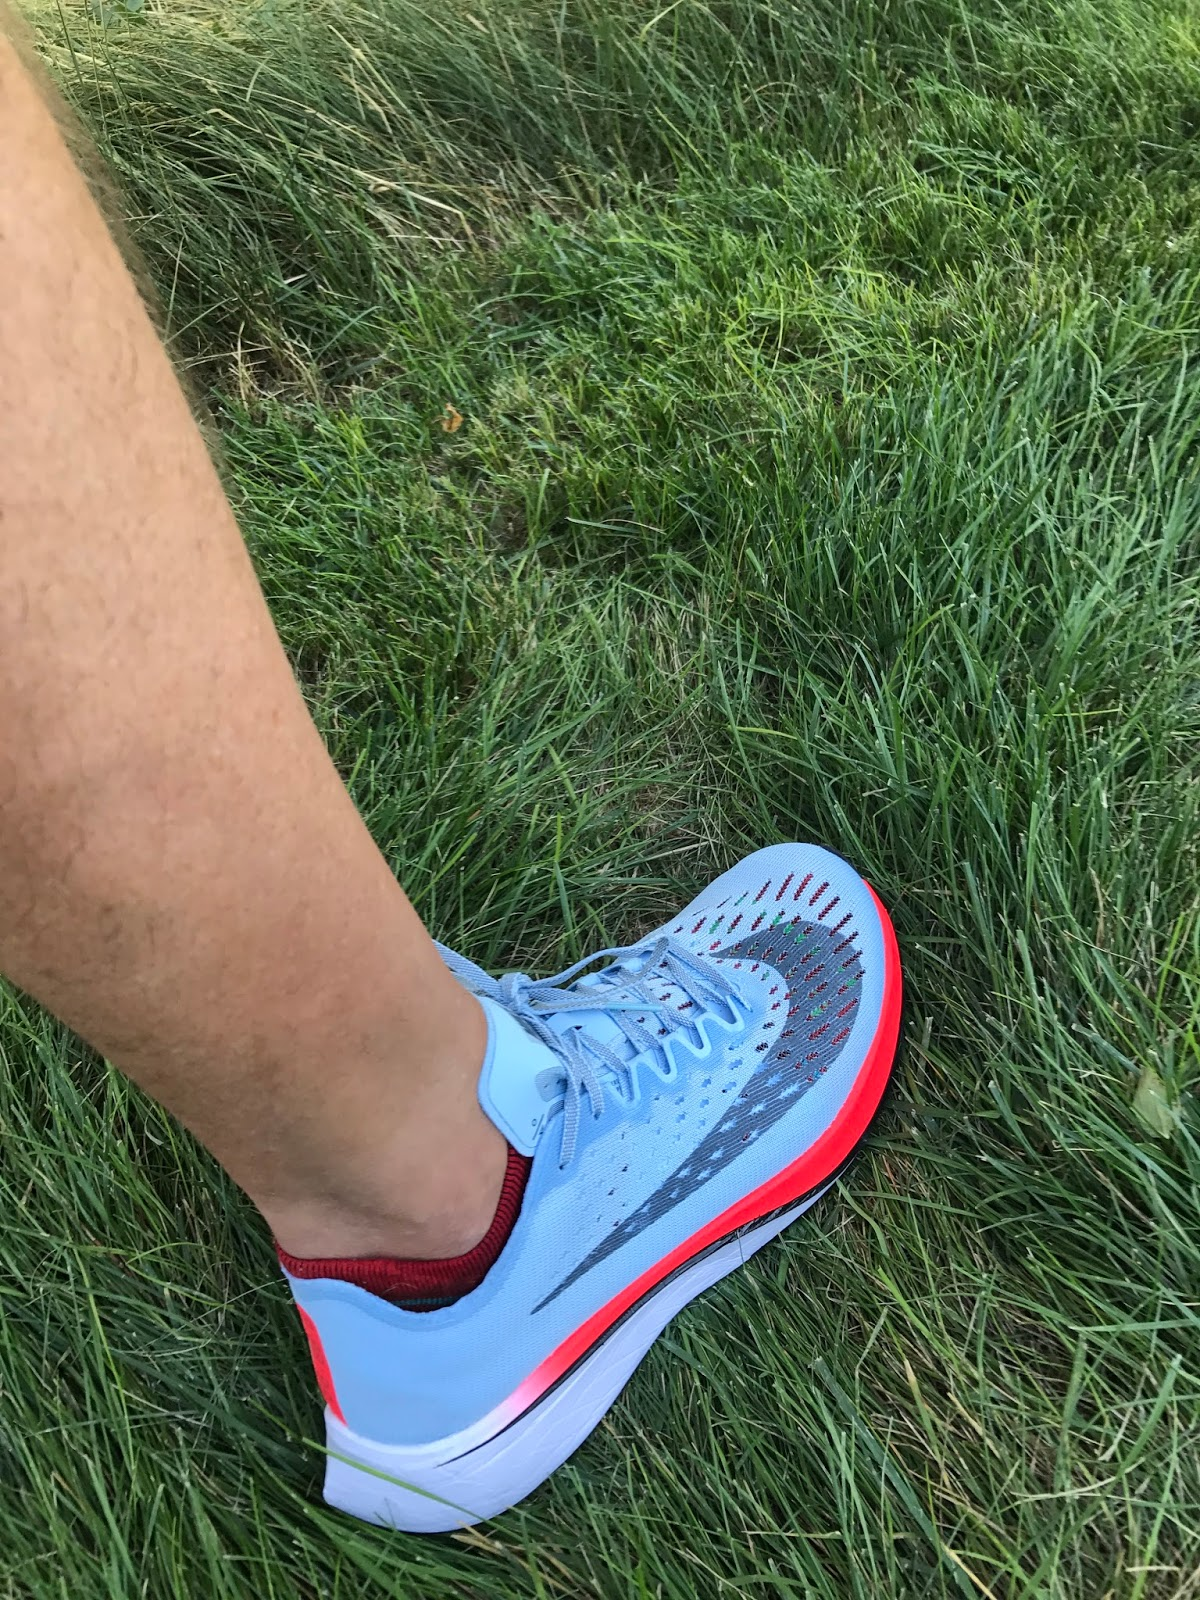 7a7d44001491 Road Trail Run  Nike Zoom Vaporfly 4% Detailed Breakdown Run and ...